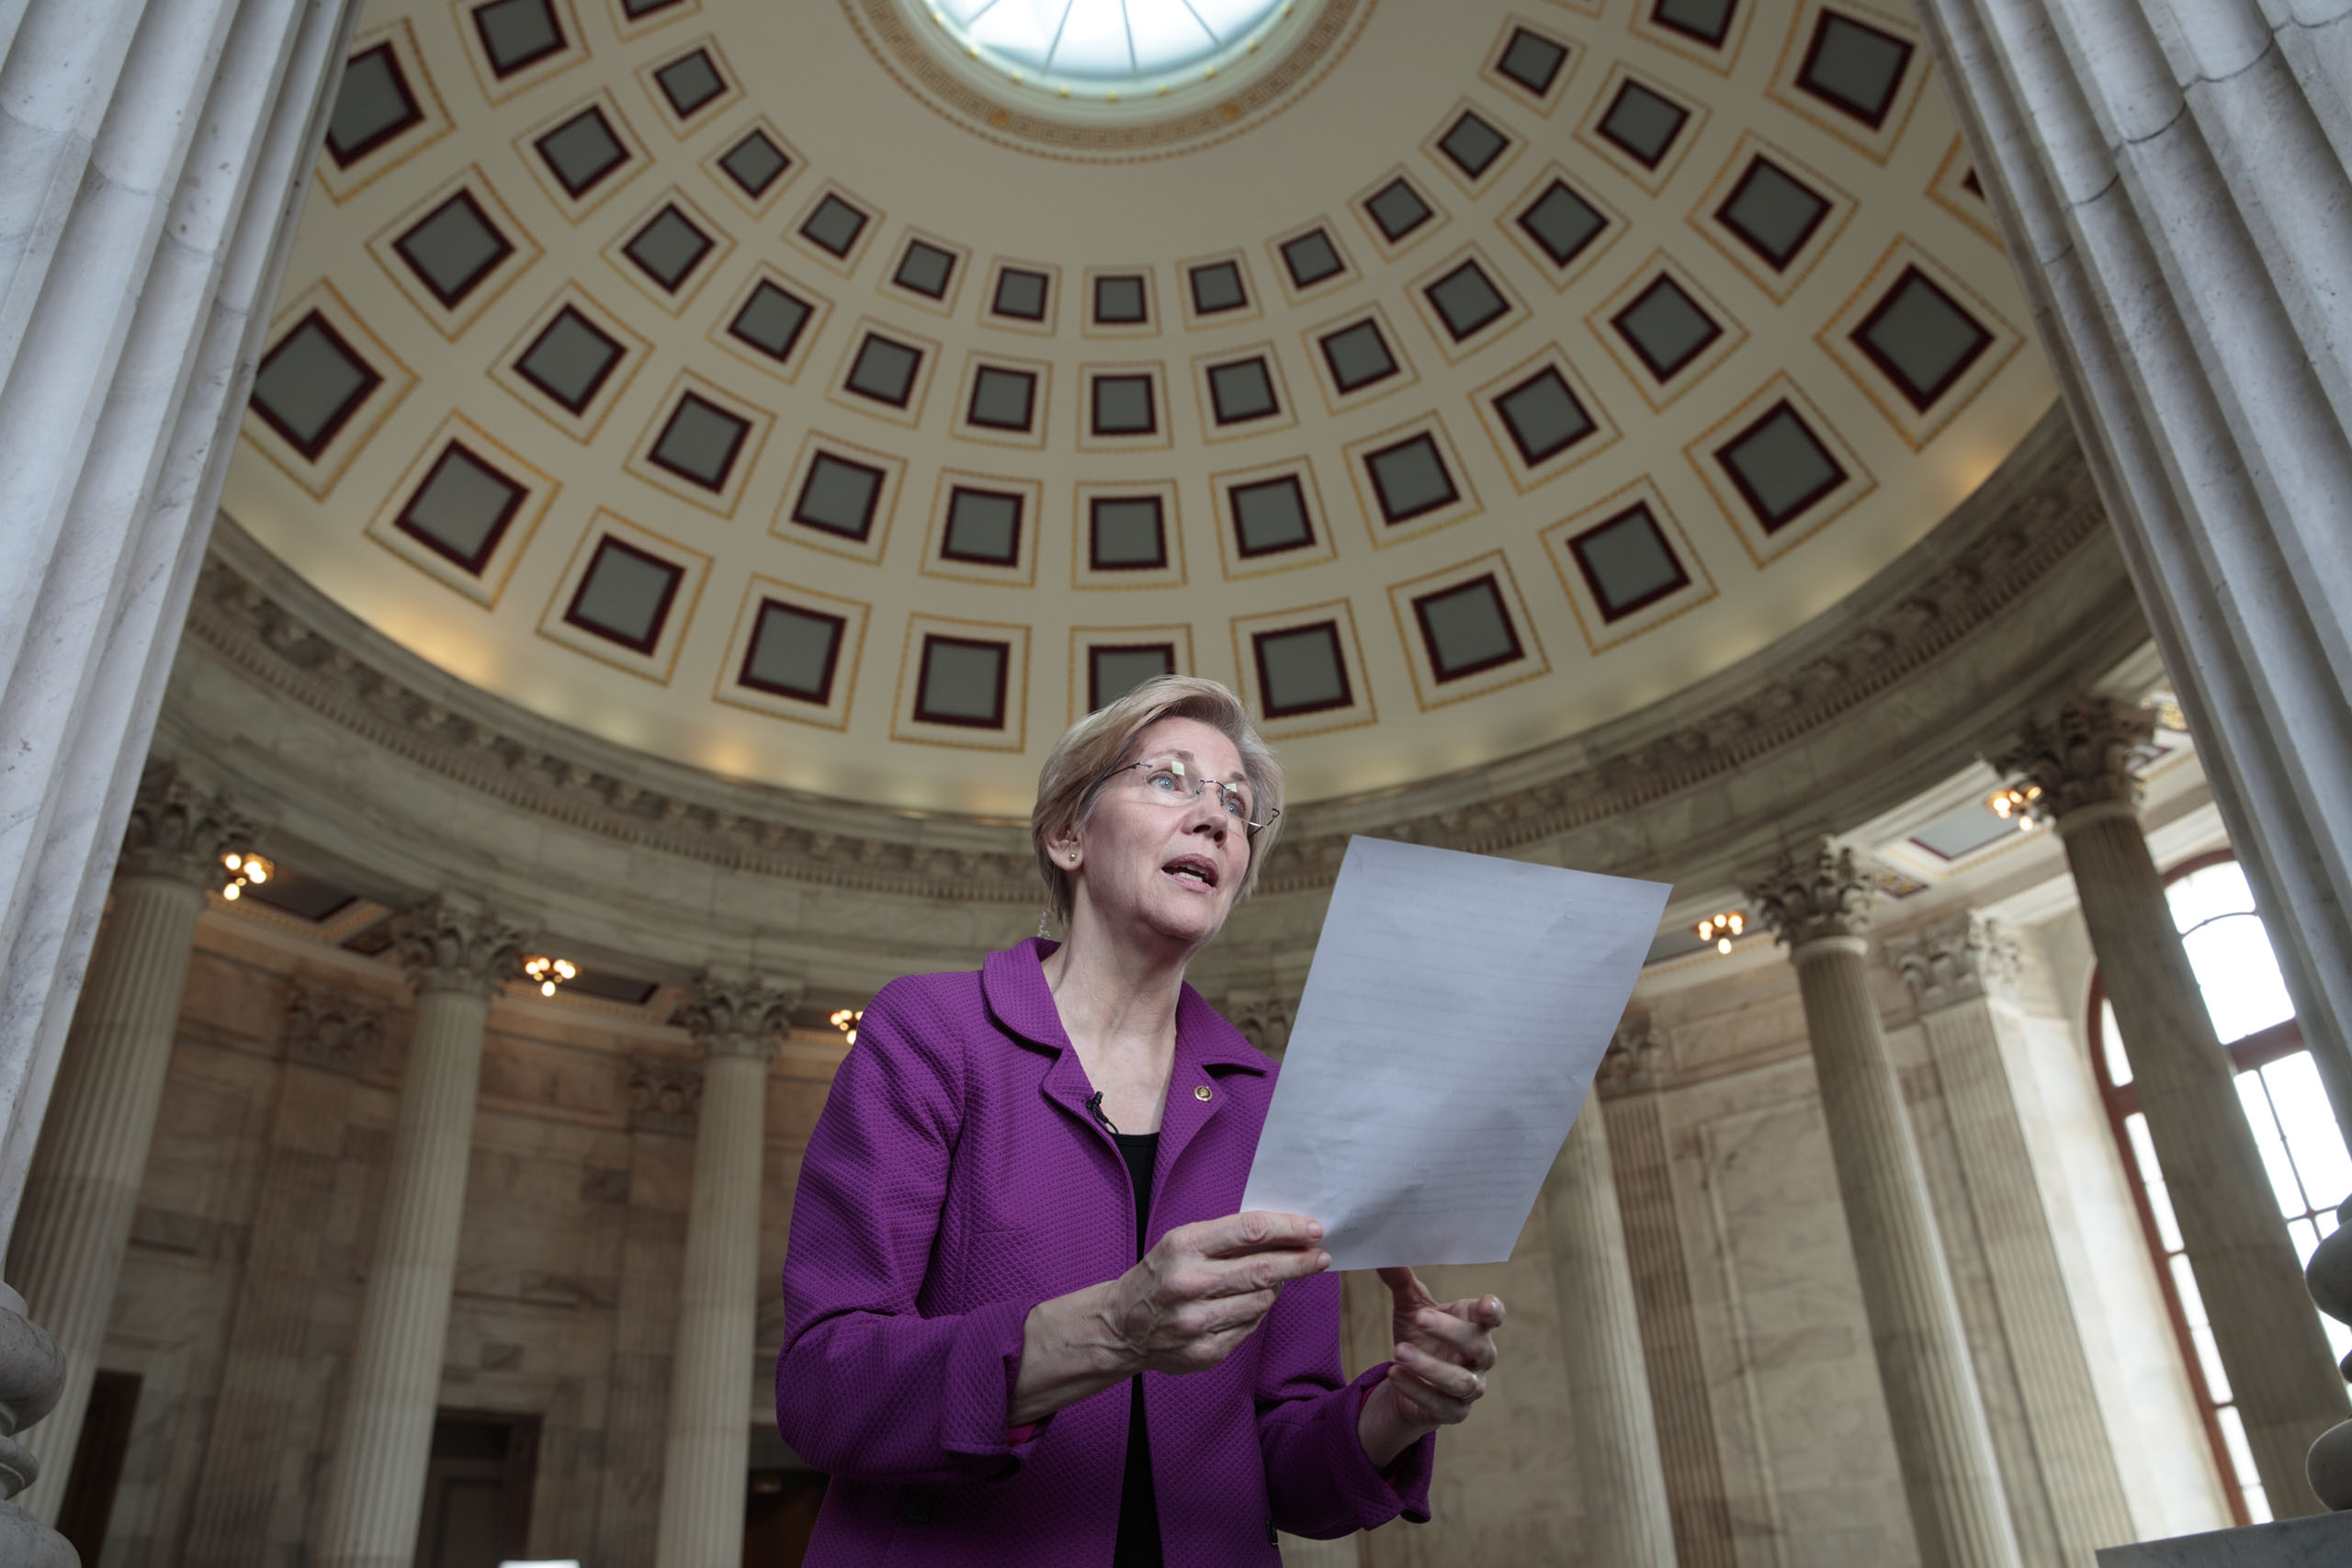 Holding a transcript of her speech in the Senate Chamber, Sen. Elizabeth Warren reacts to being rebuked by the Senate leadership and accused of impugning a fellow senator, Attorney General-designate, Sen. Jeff Sessions, R-Ala., on Feb. 8, 2017. Warren was barred from saying anything more on the Senate floor about Sessions after she quoted from an old letter from Martin Luther King Jr.'s widow about Sessions.